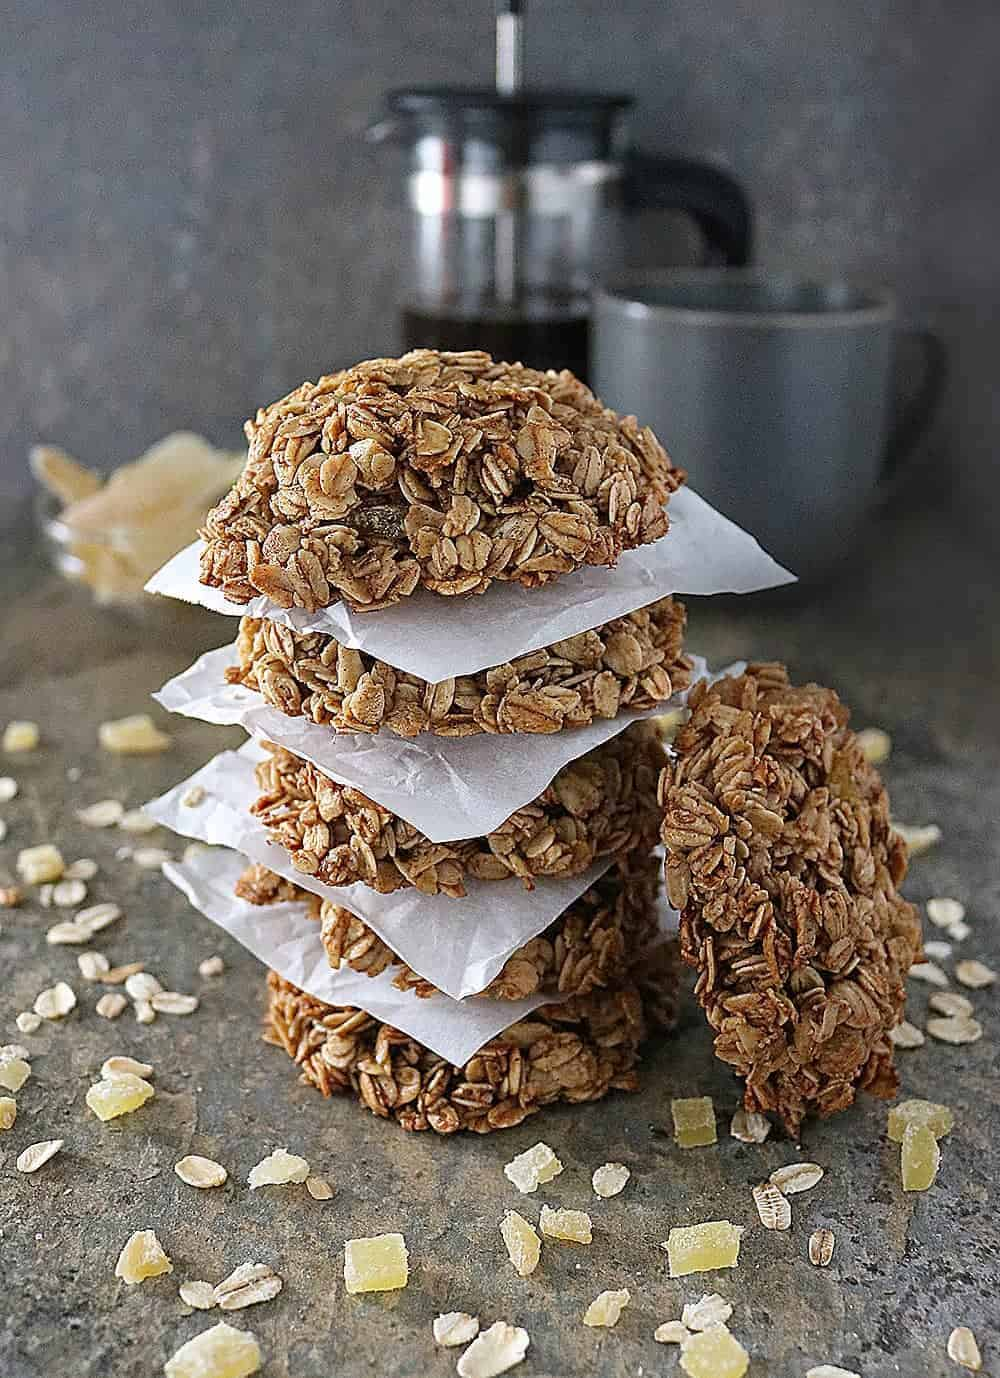 Ginger Granola Breakfast Cookies full of ginger and warm spices. Breakfast on the go never looked so good.